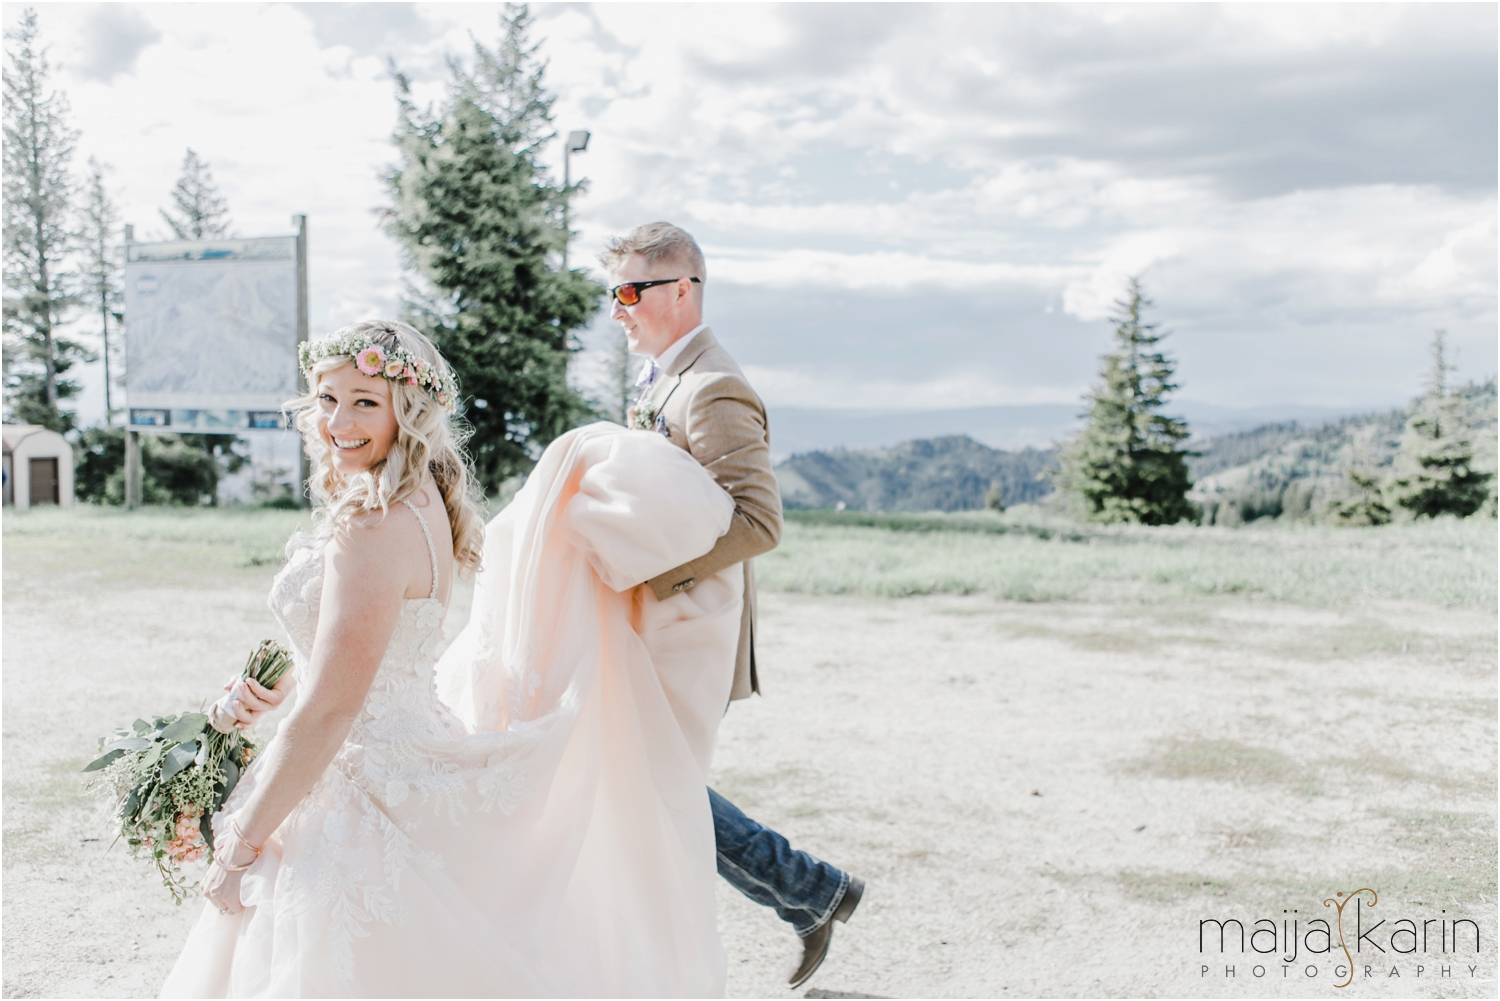 Bogus-Basin-Wedding-Maija-Karin-Photography_0054.jpg